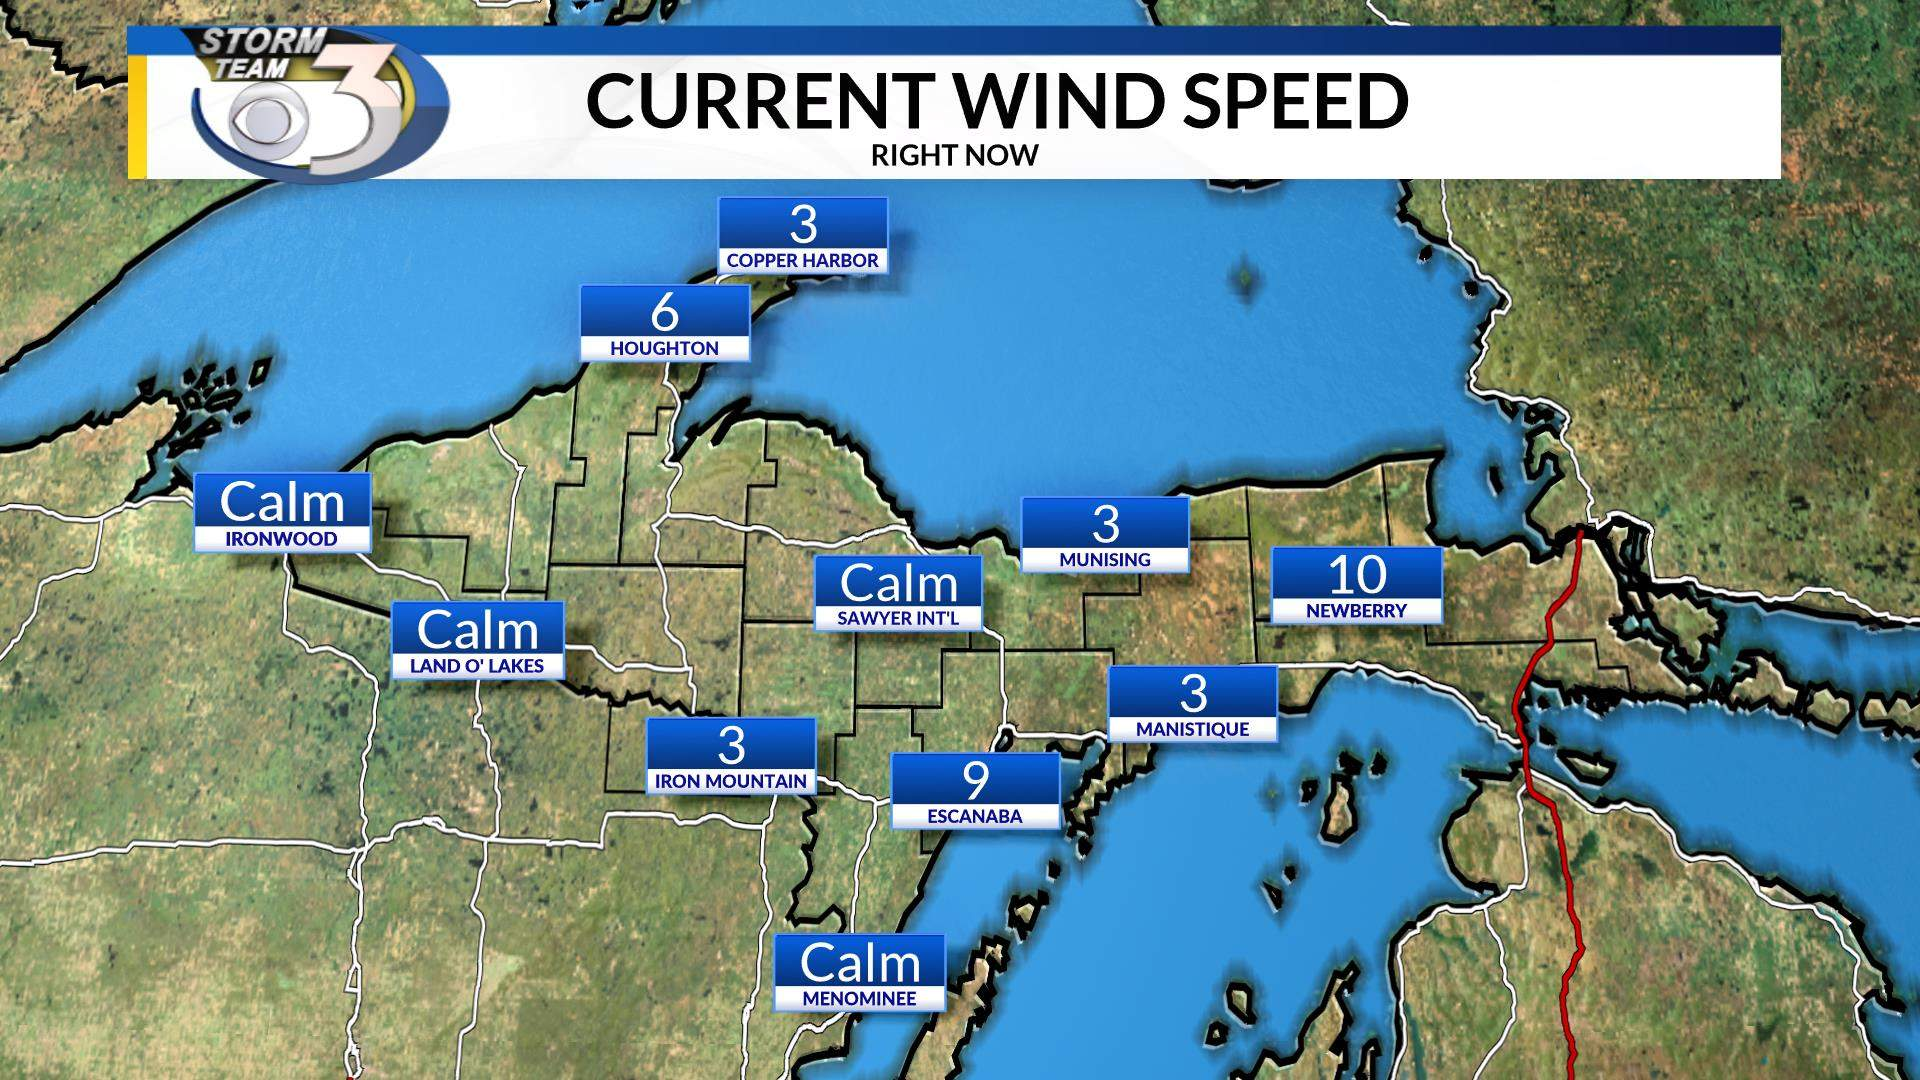 Current Wind Speed